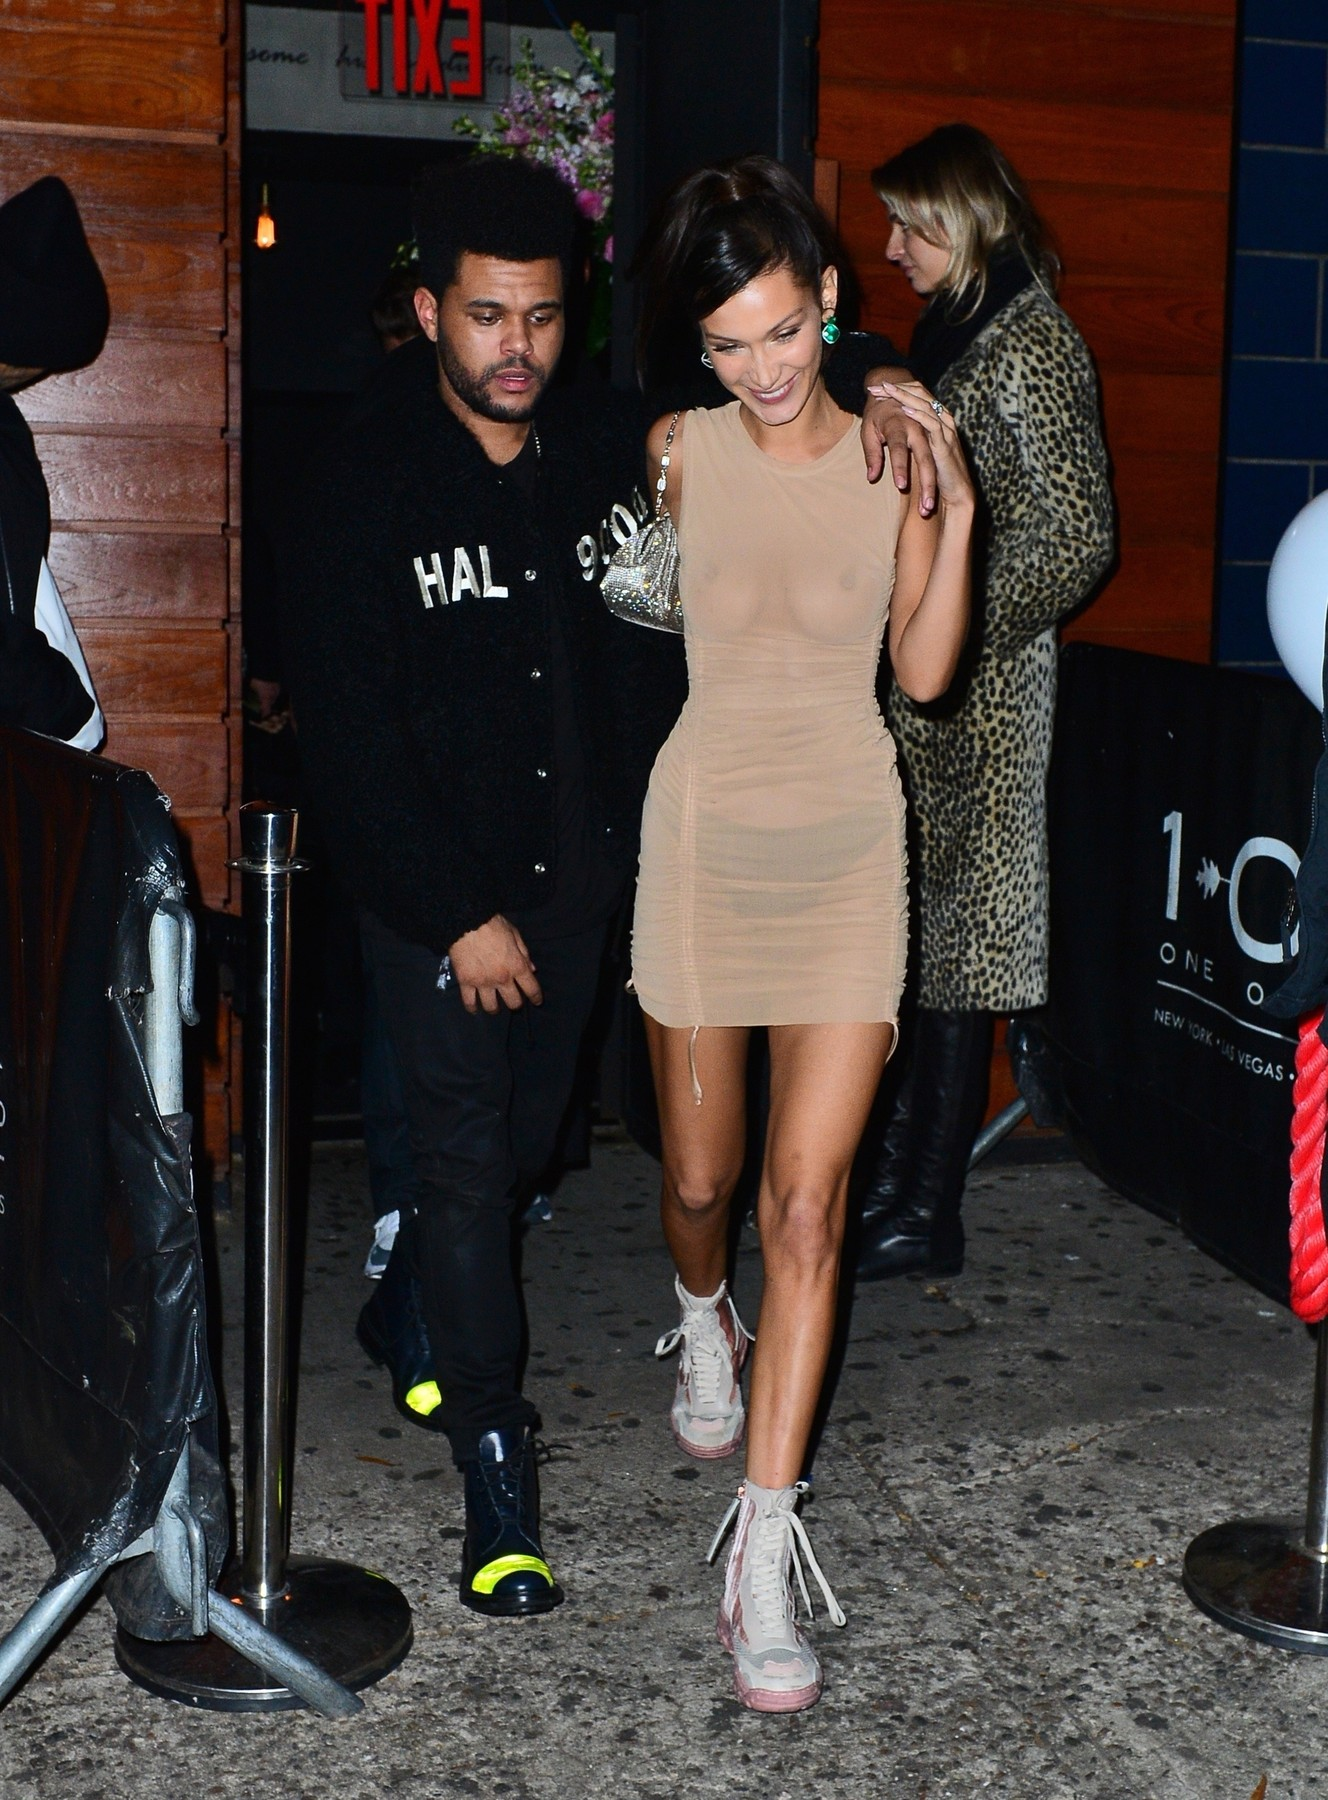 New York, NY  - Bella Hadid holds hands with singer Halsey and beau the Weeknd as she heads to Victoria's Secret after party at Avenue in NYC.  Pictured: Halsey, Bella Hadid, The Weeknd    *UK Clients - Pictures Containing Children Please Pixelate Face Prior To Publication*,Image: 394974138, License: Rights-managed, Restrictions: , Model Release: no